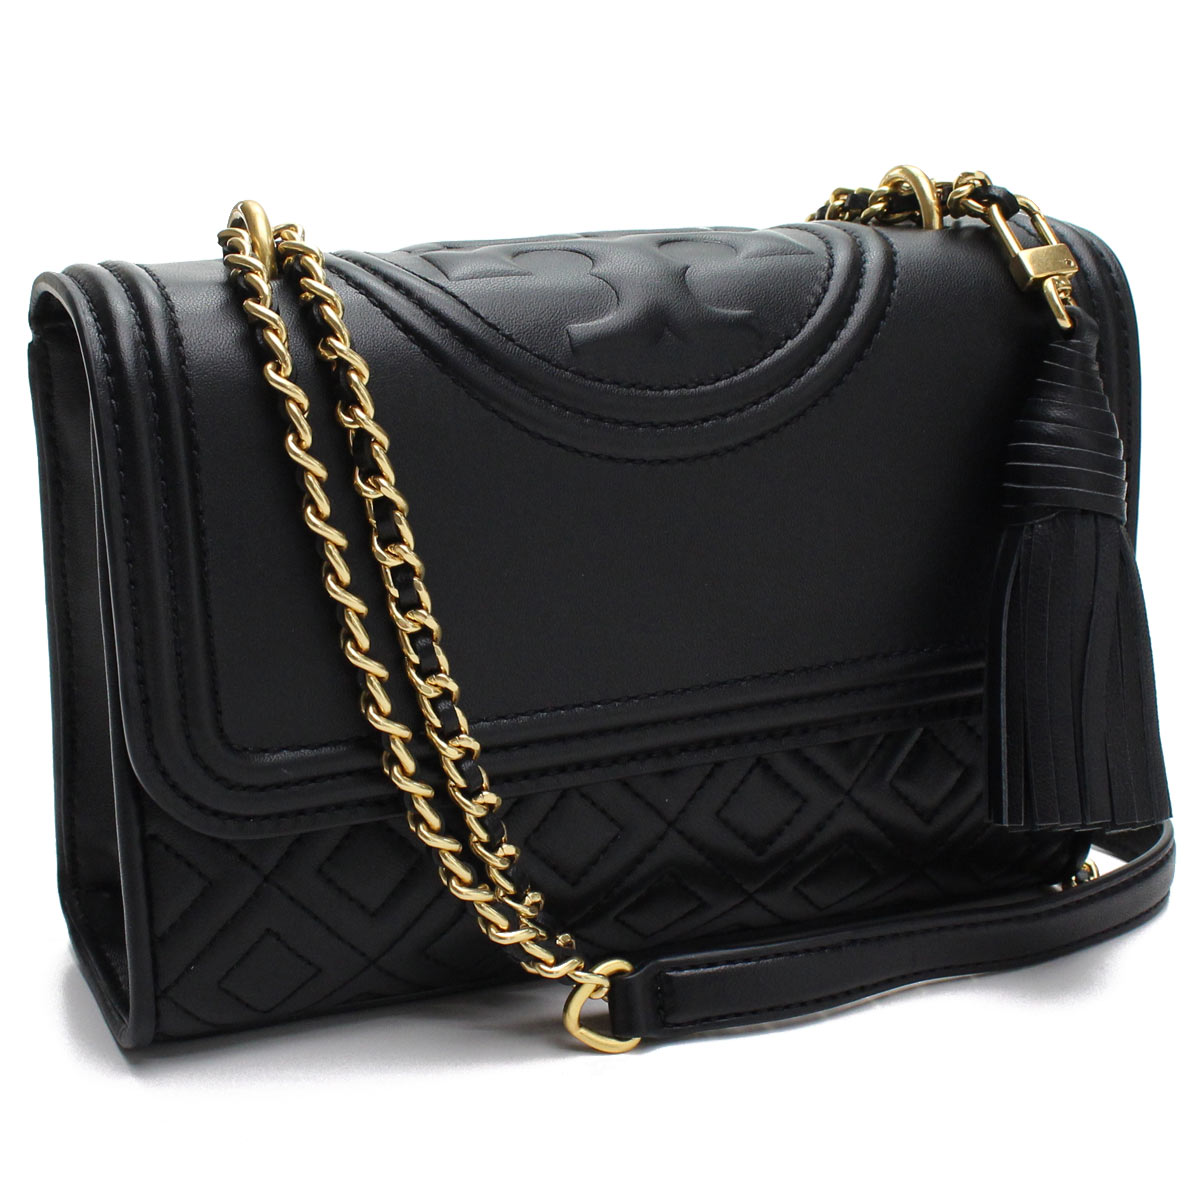 19d77c9a1573 Bighit The total brand wholesale  Tolly Birch TORY BURCH FLEMING QUILTED  LEATHER shoulder bag 43834 001 BLACK black